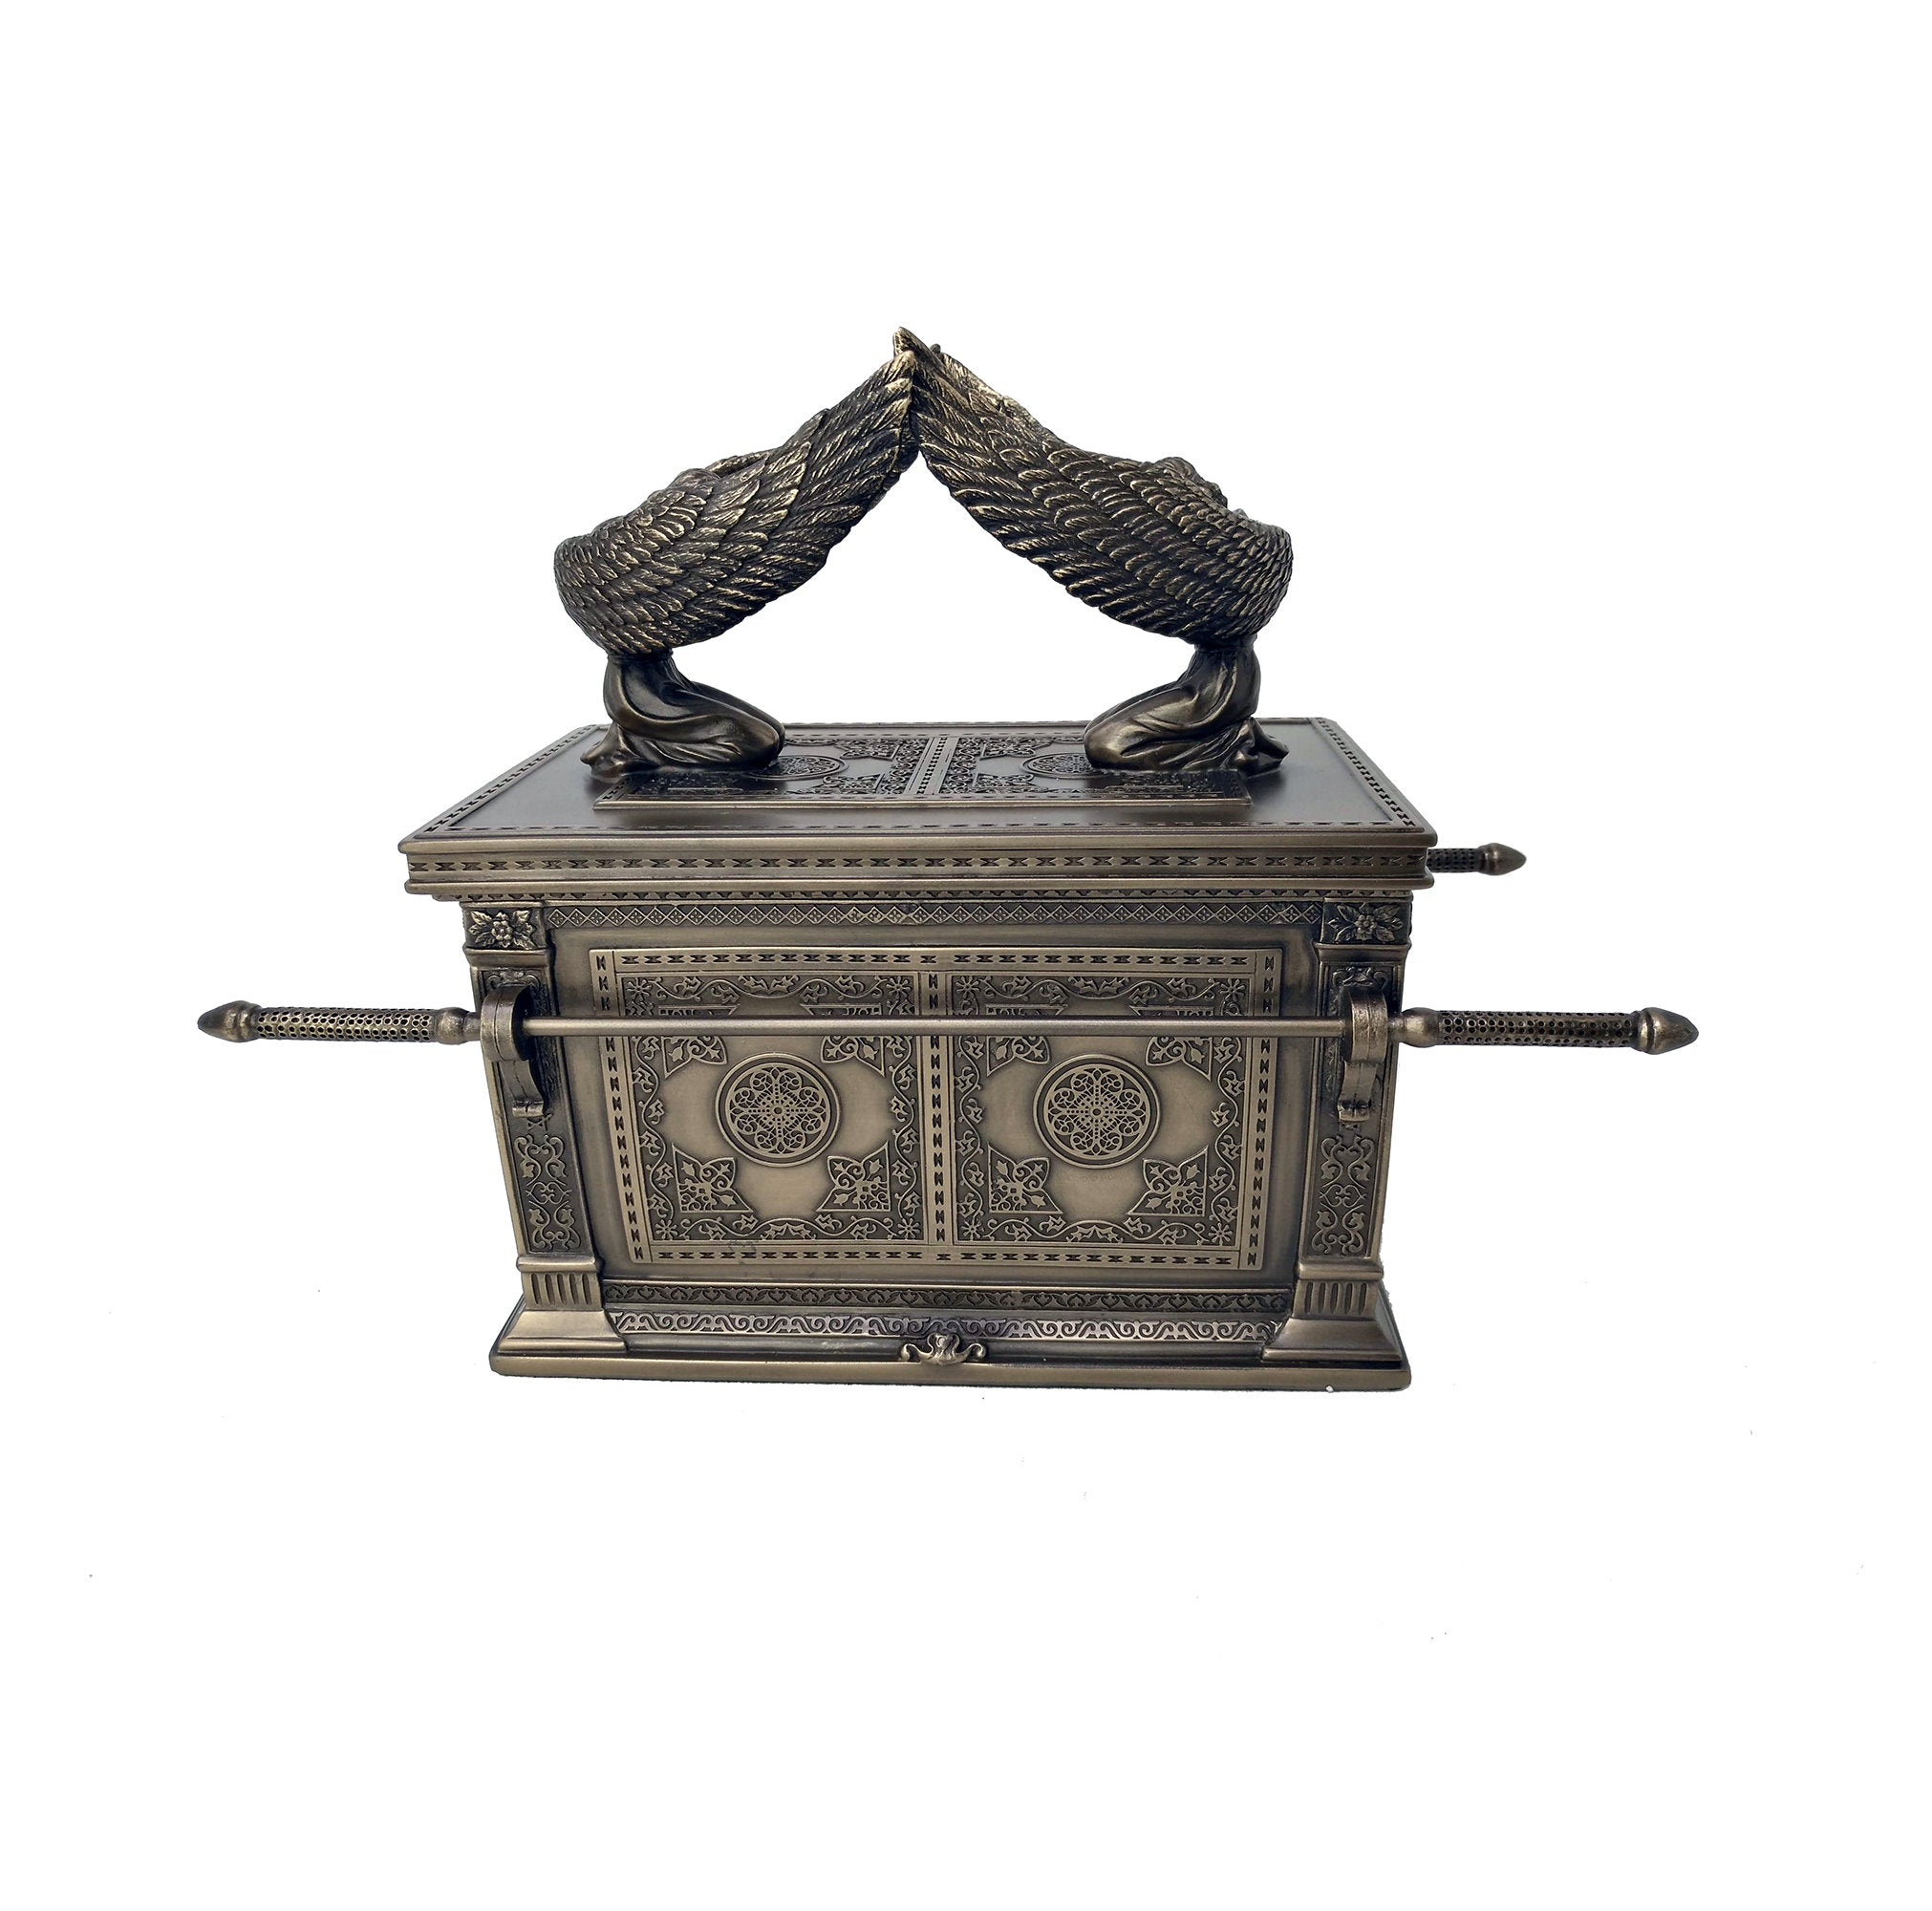 Large Ark of The Covenant Box - Legendary Ark of Covenant Box Containing The Ten Commandment Tablets - 11 Inches / 28cm